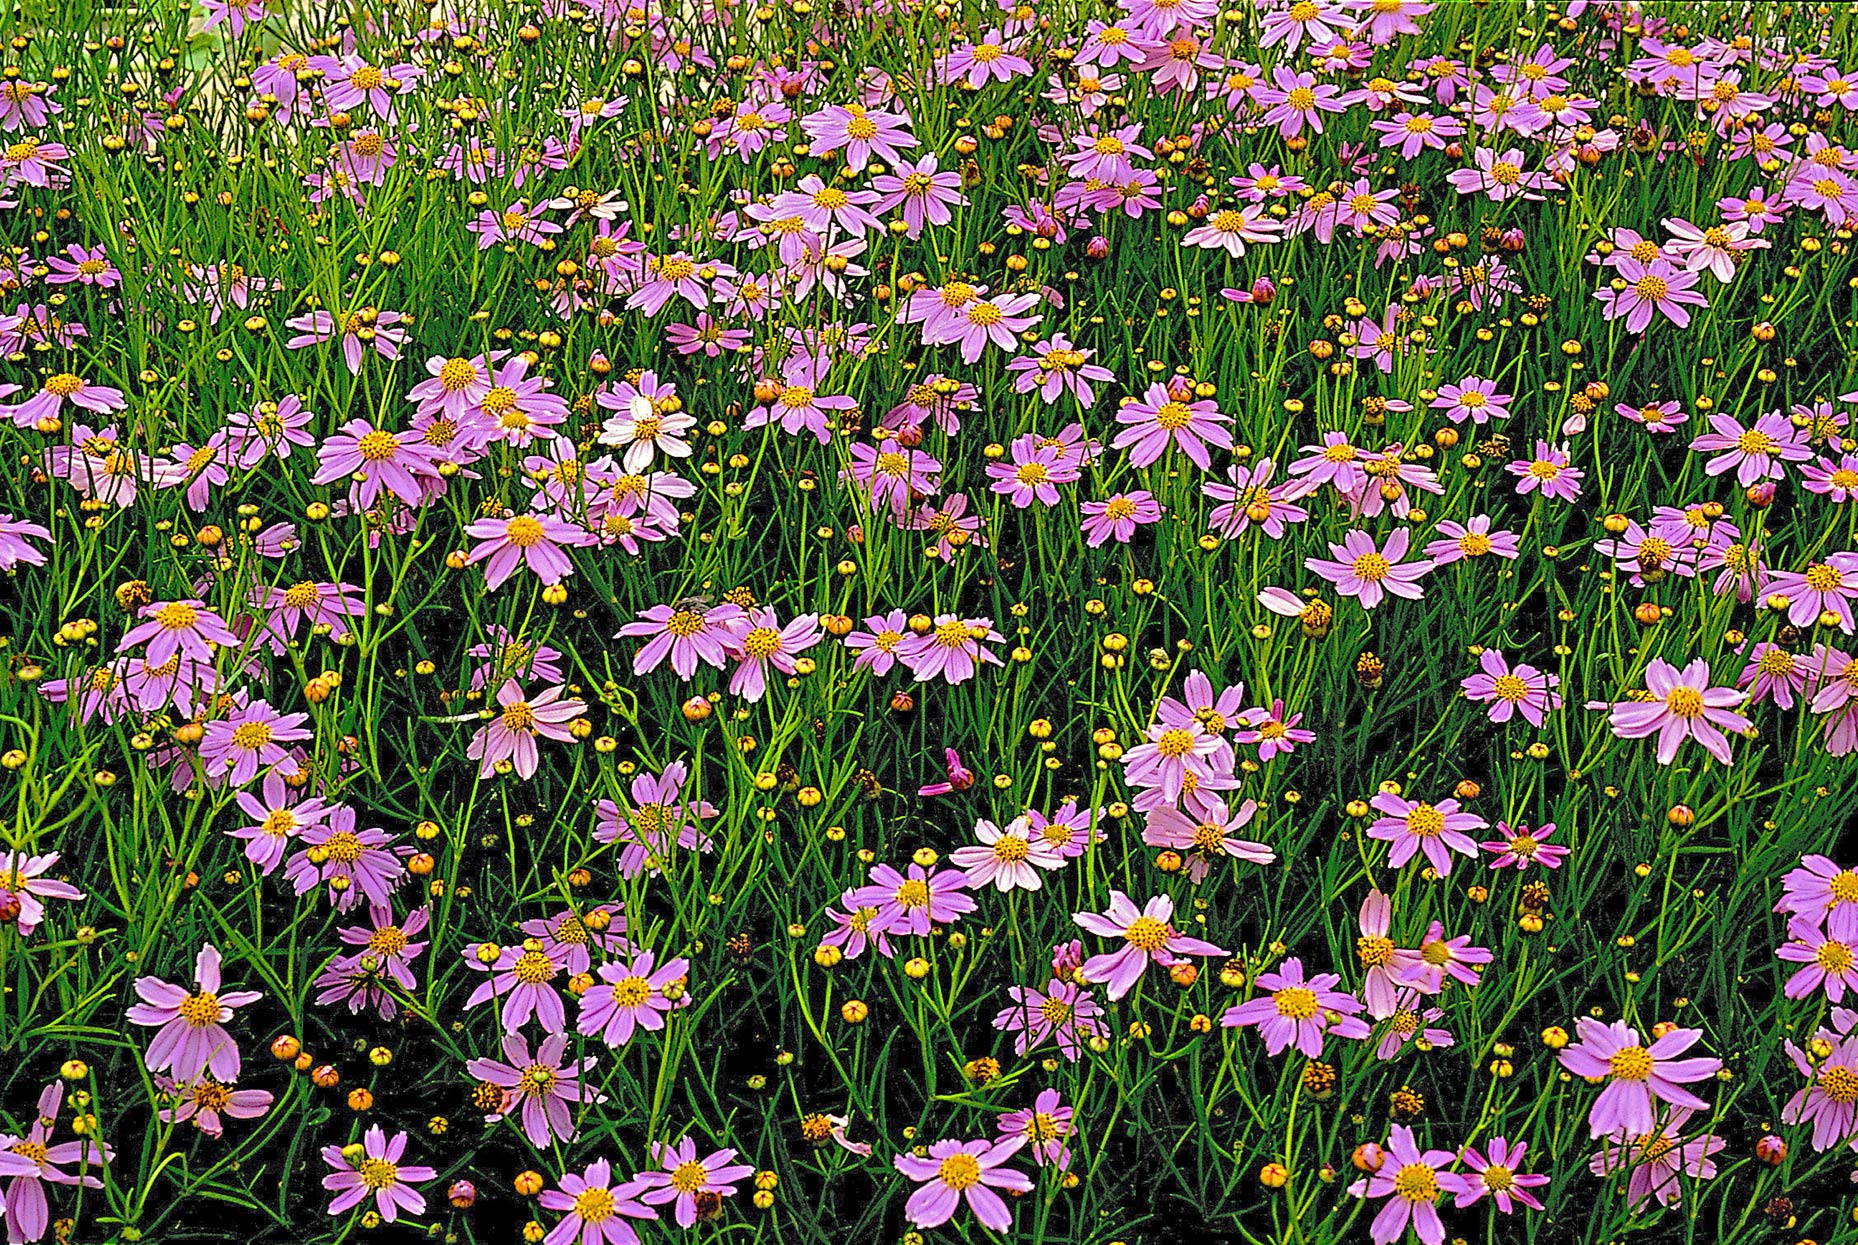 pink coreopsis rosea blossoms